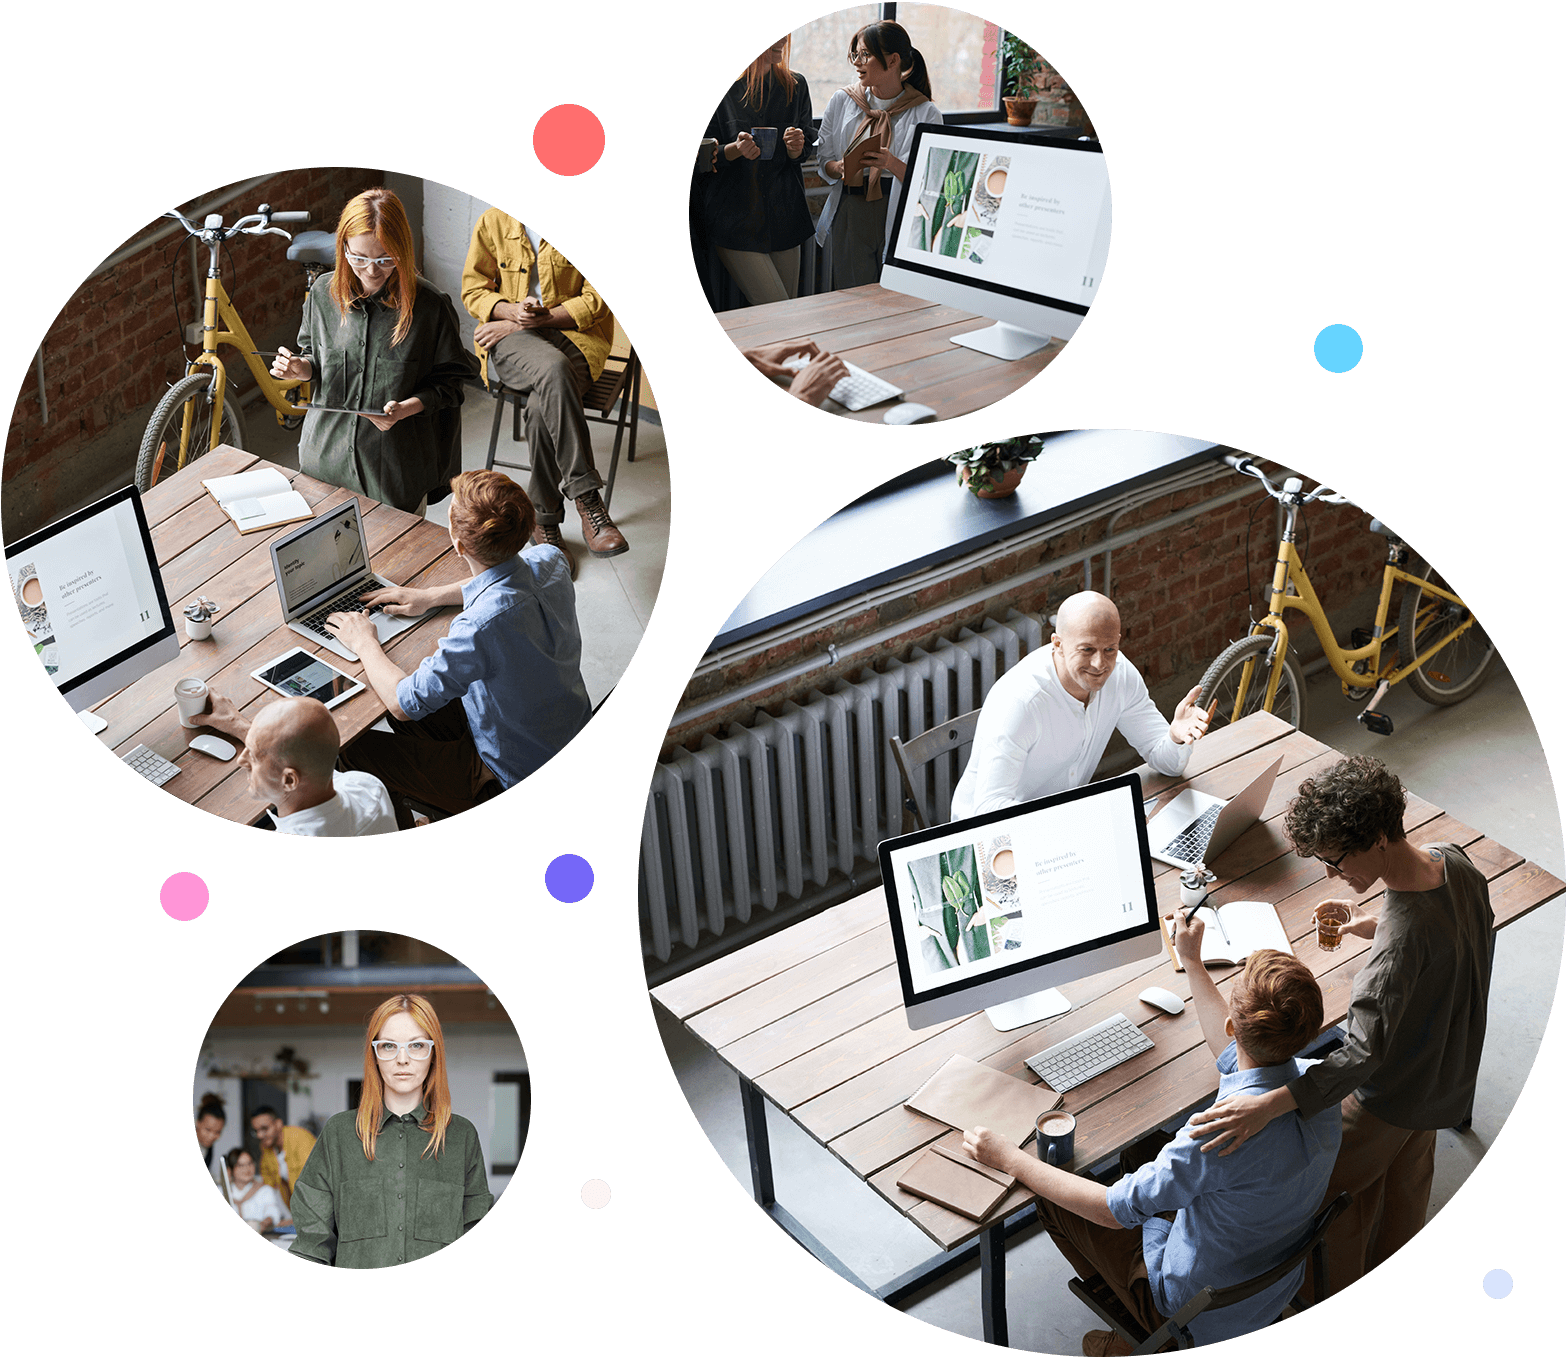 Four images of young people working at a large wooden desk  in a modern office.